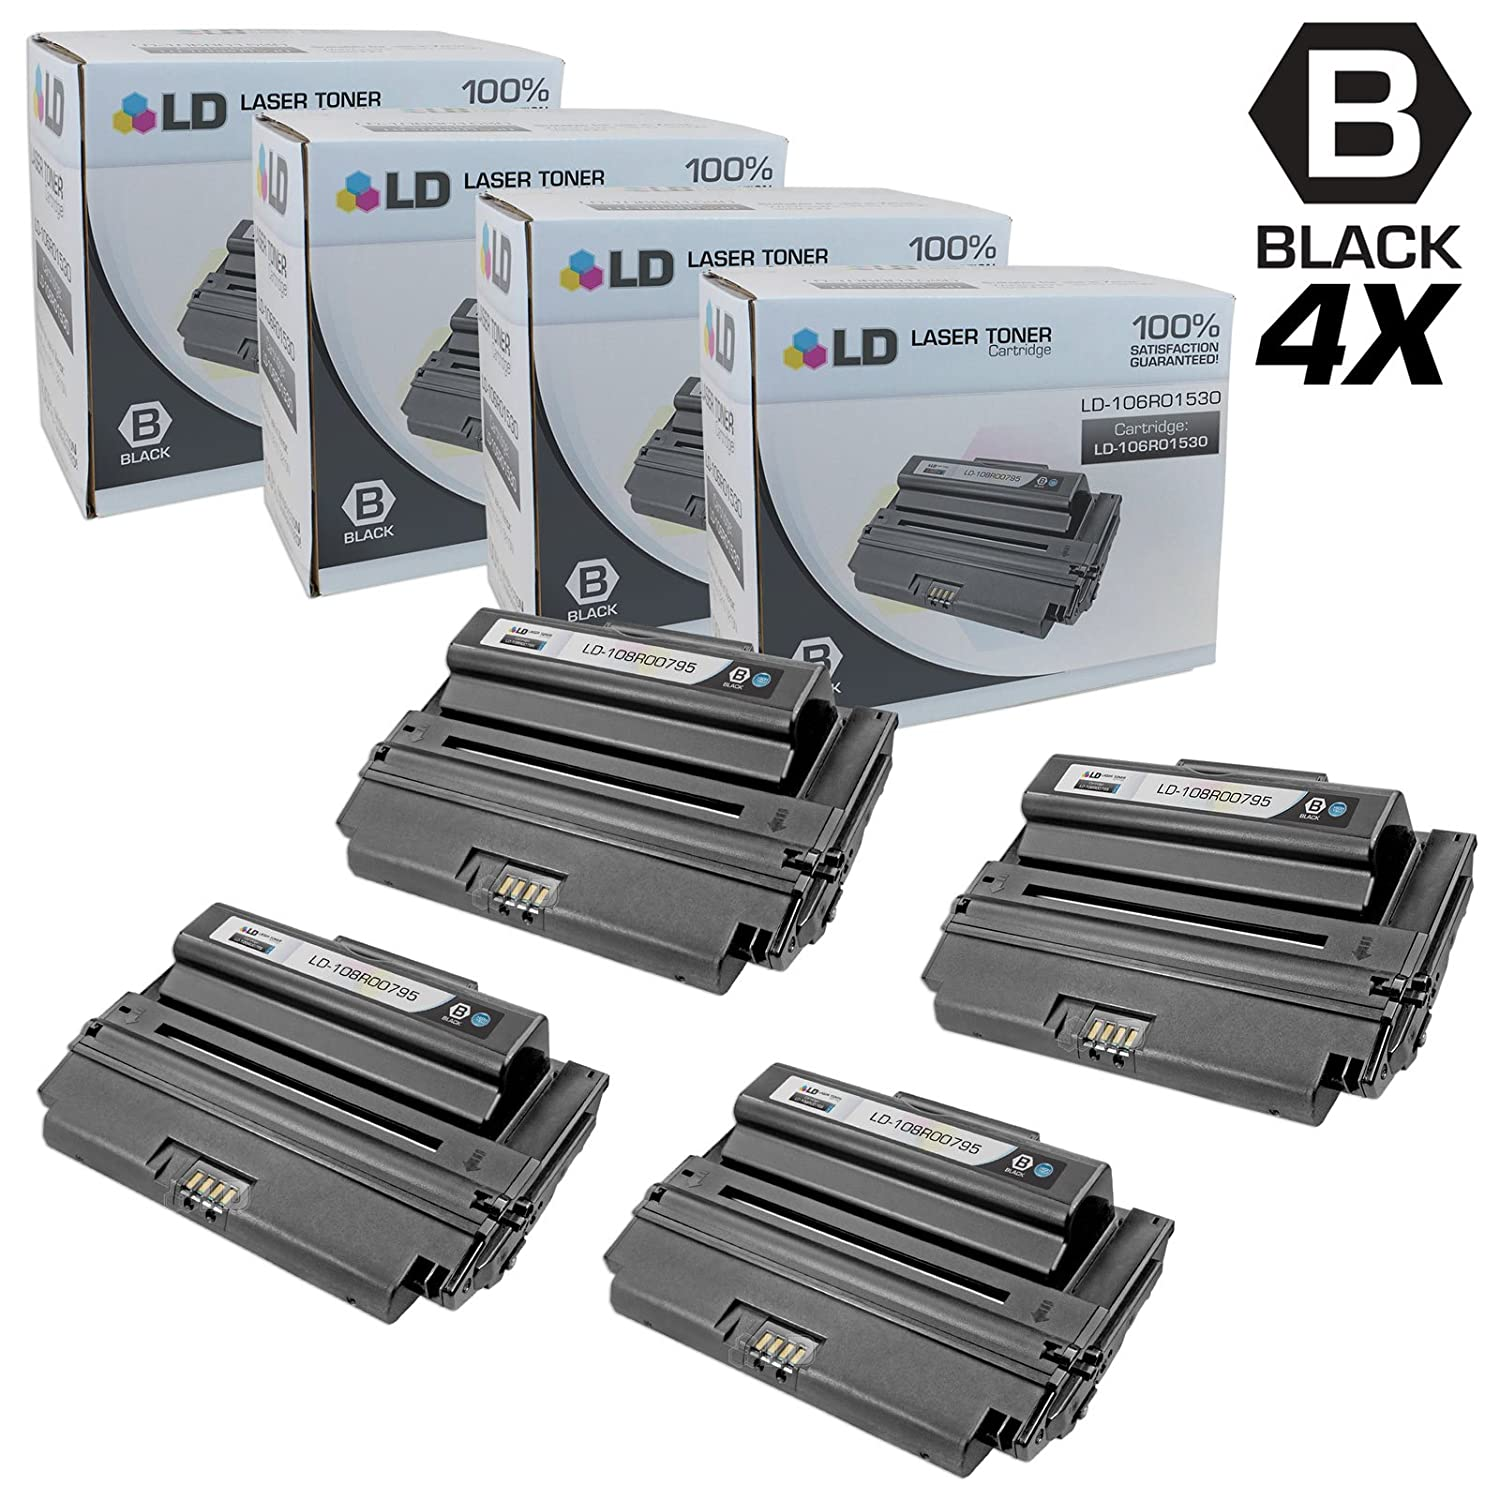 Black LD Compatible Toner Cartridge Replacement for Xerox Phaser 3635 108R795 High Yield